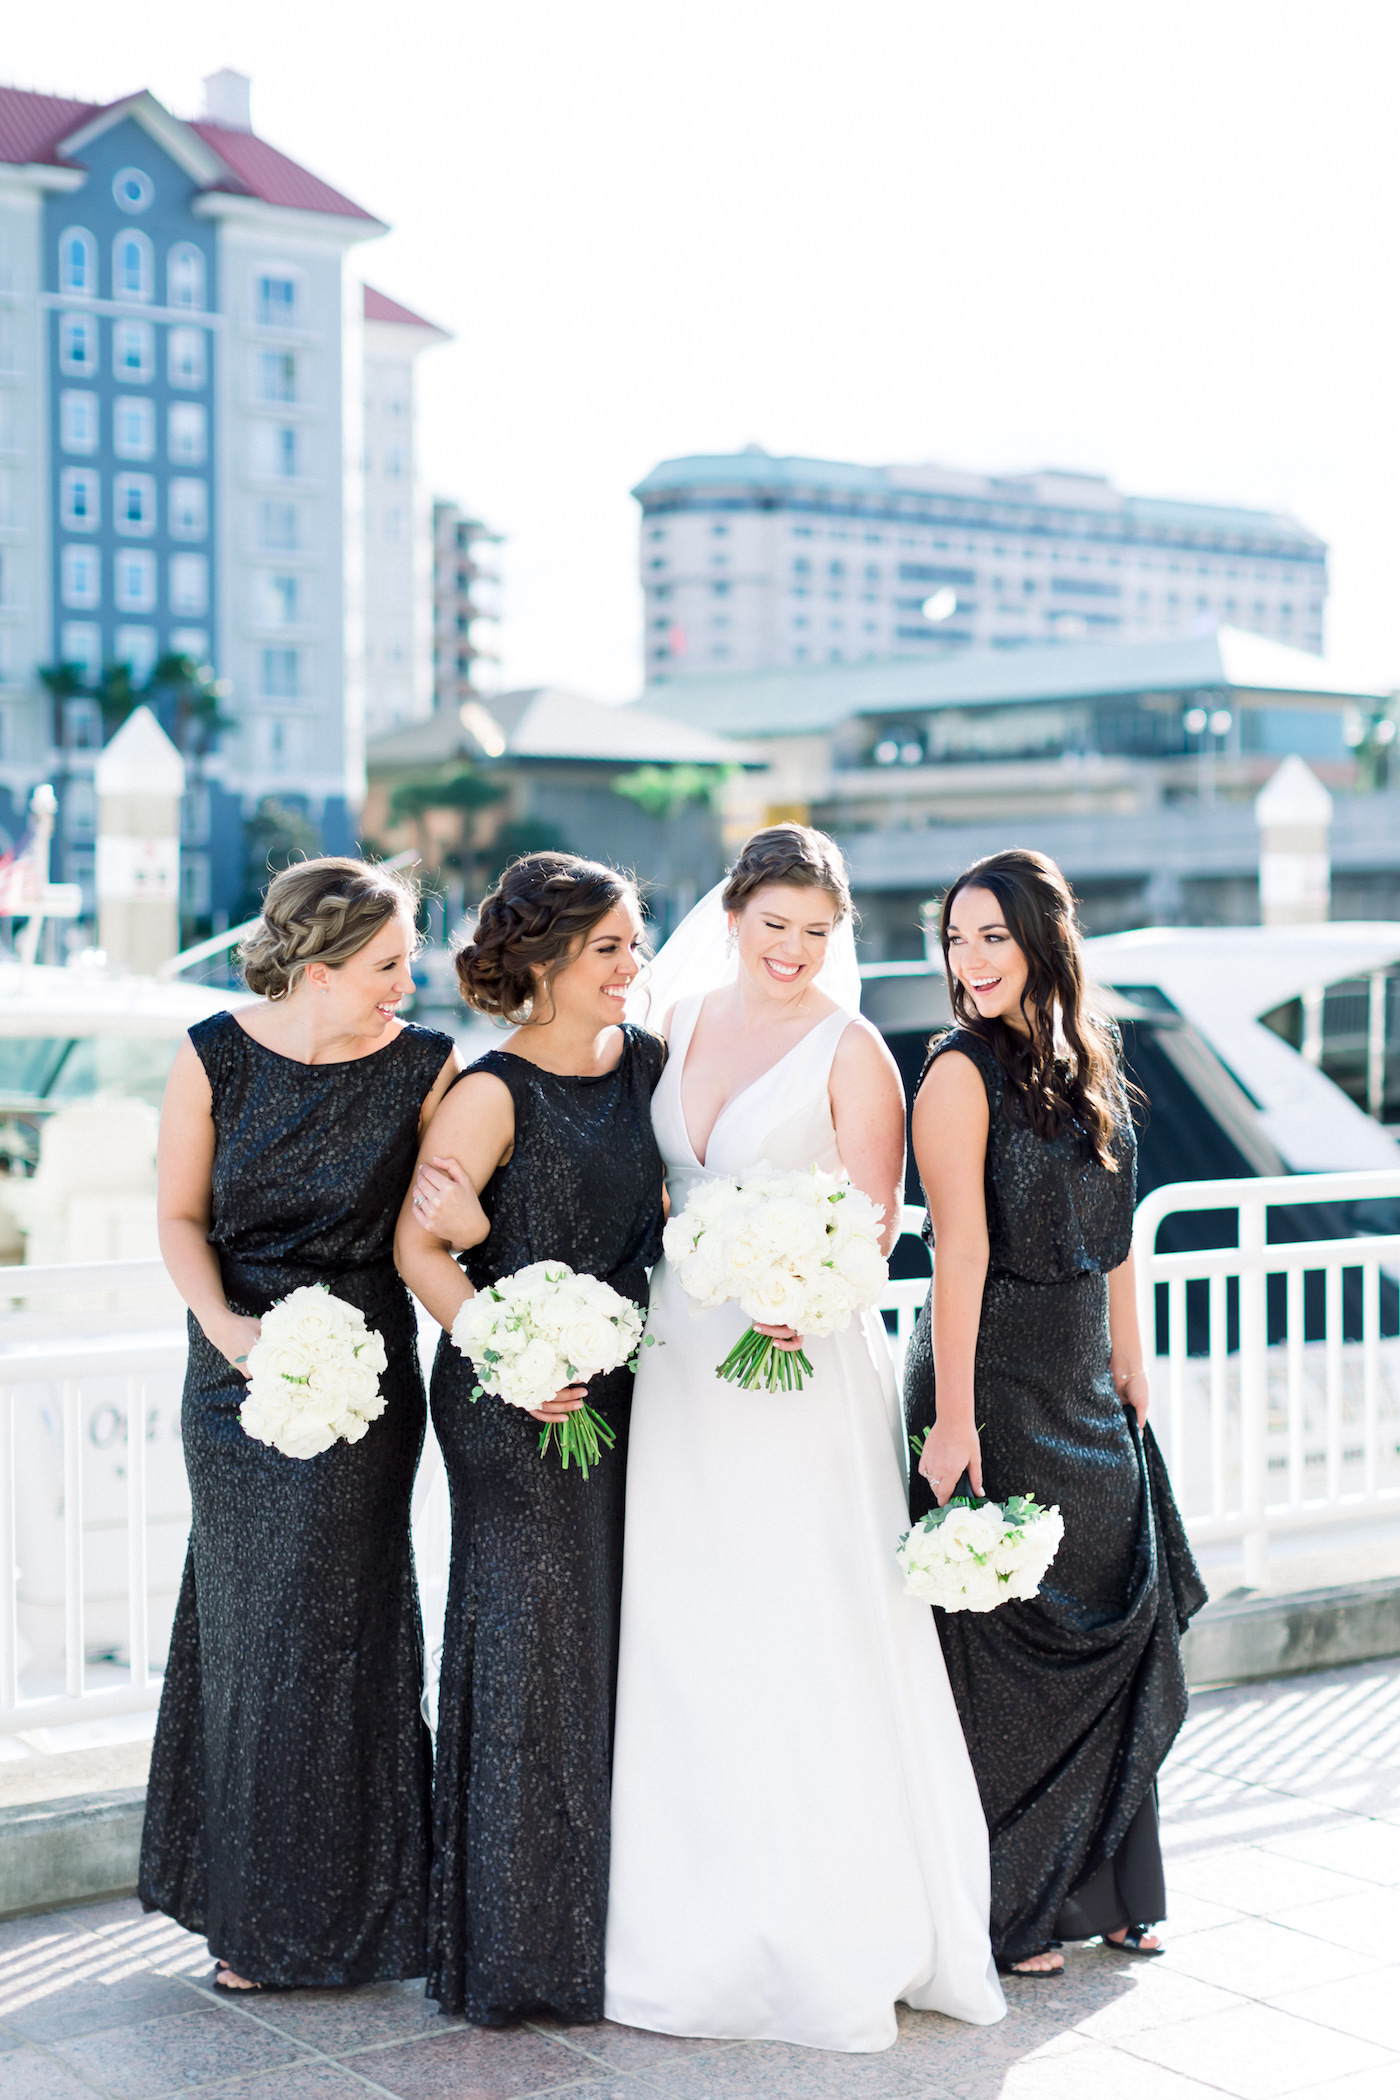 Classic Bride with Bridesmaids in Matching Black Dresses Holding White Floral Bouquets | Wedding Photographer Shauna and Jordon Photography | Tampa Wedding Planner UNIQUE Weddings + Events | Wedding Hair and Makeup Femme Akoi Beauty Studio